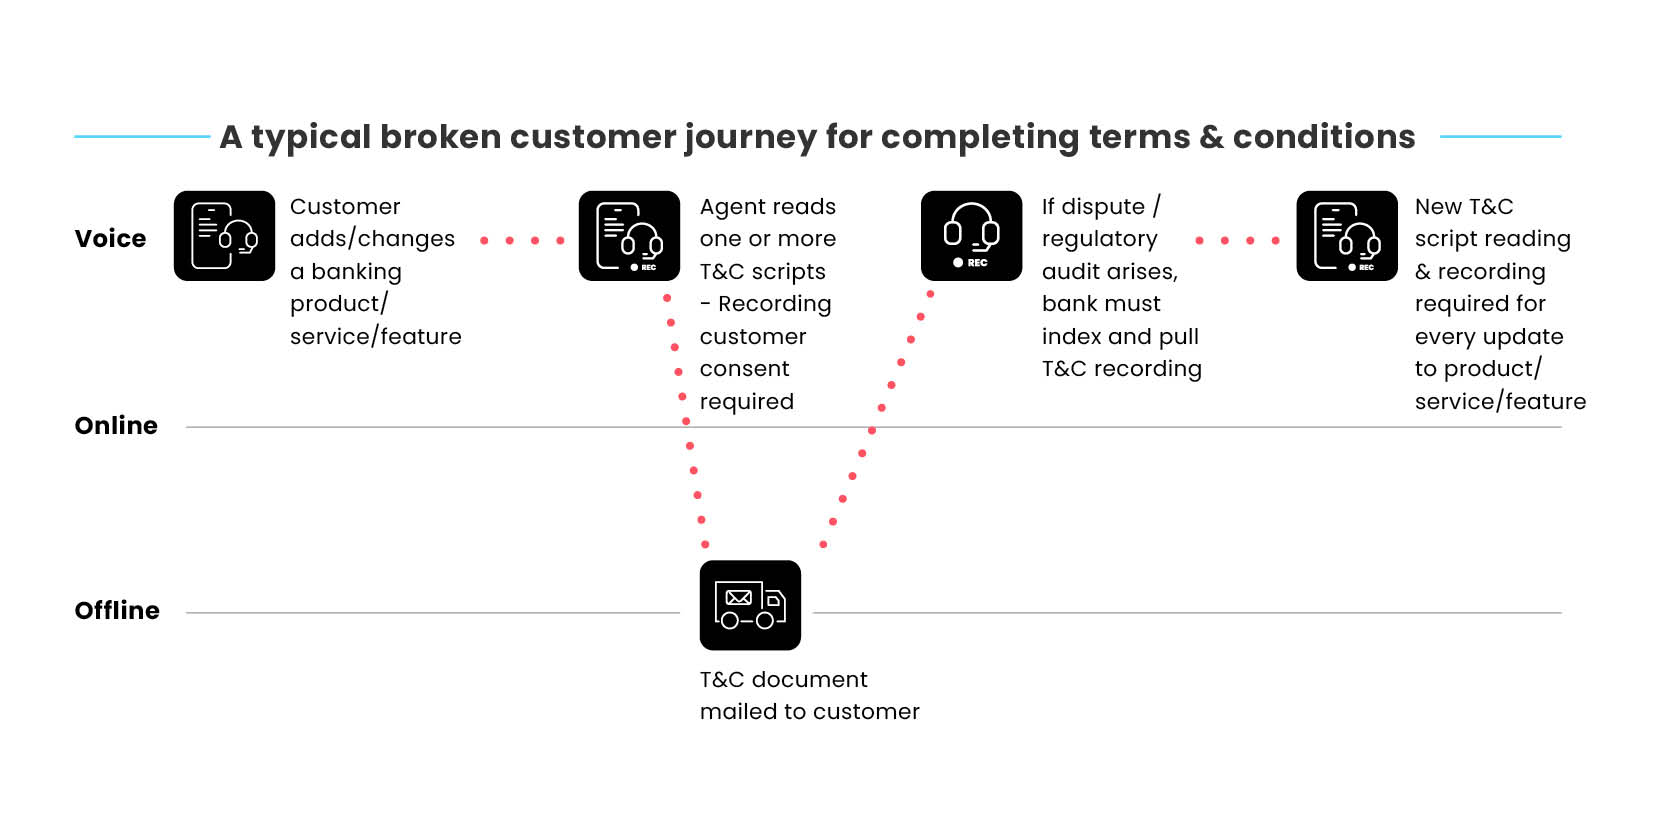 broken-journies-blog-images-bankning-A typical broken customer journey for completing terms & conditions